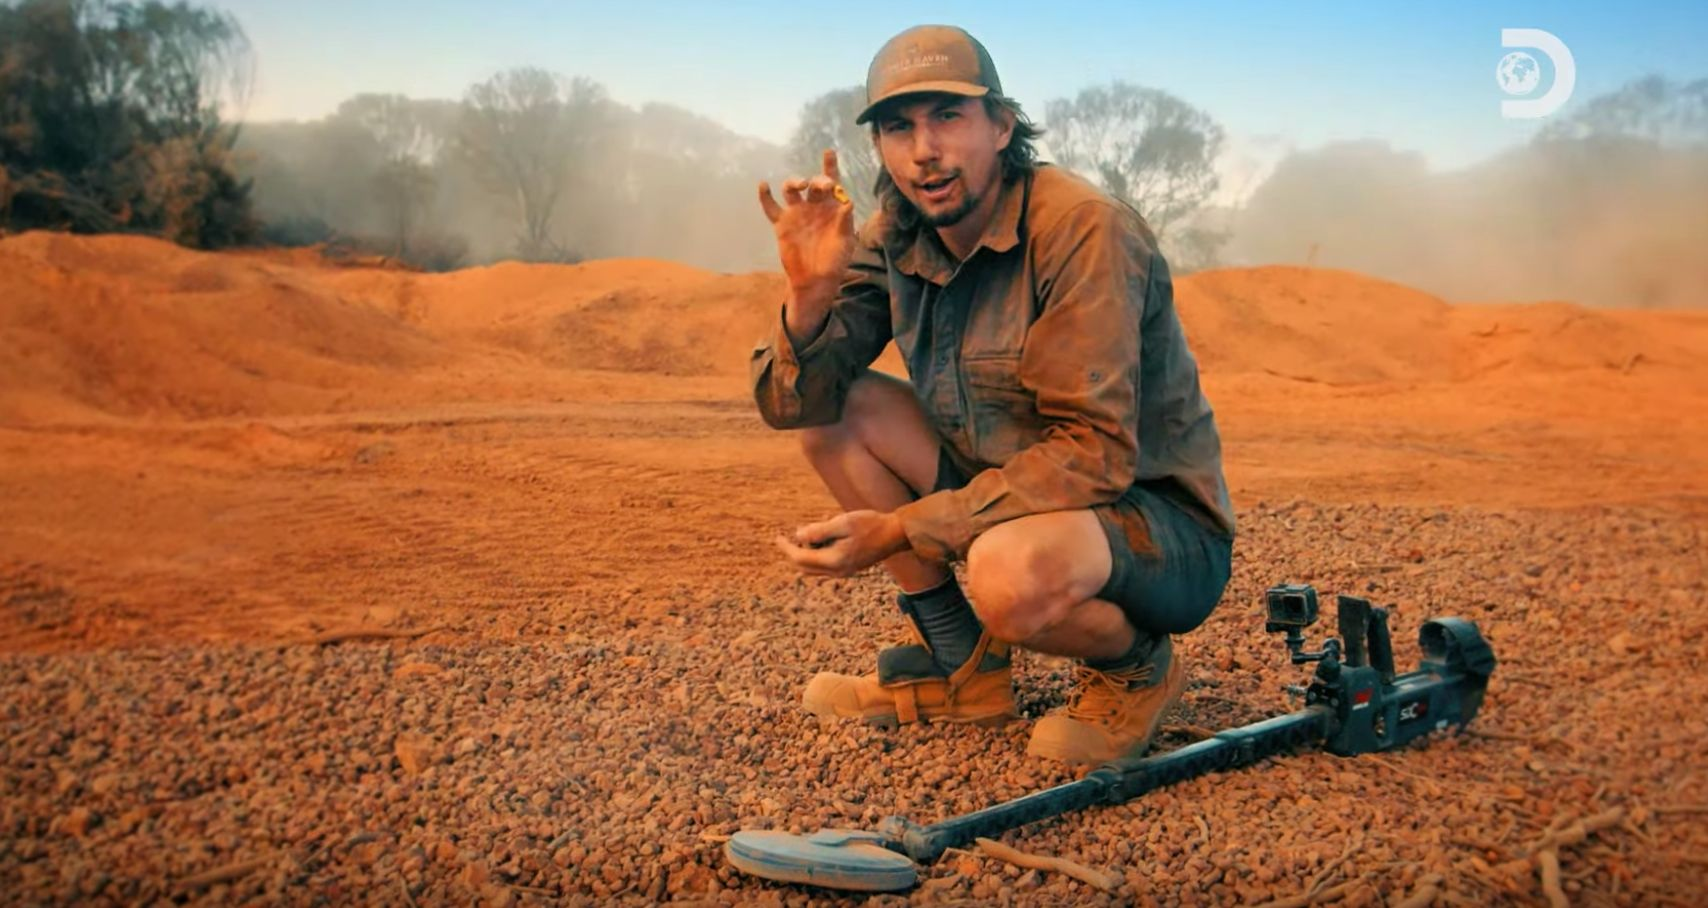 Gold Rush Parker Schnabel May Have Struck It Rich In Australia Footage Shows